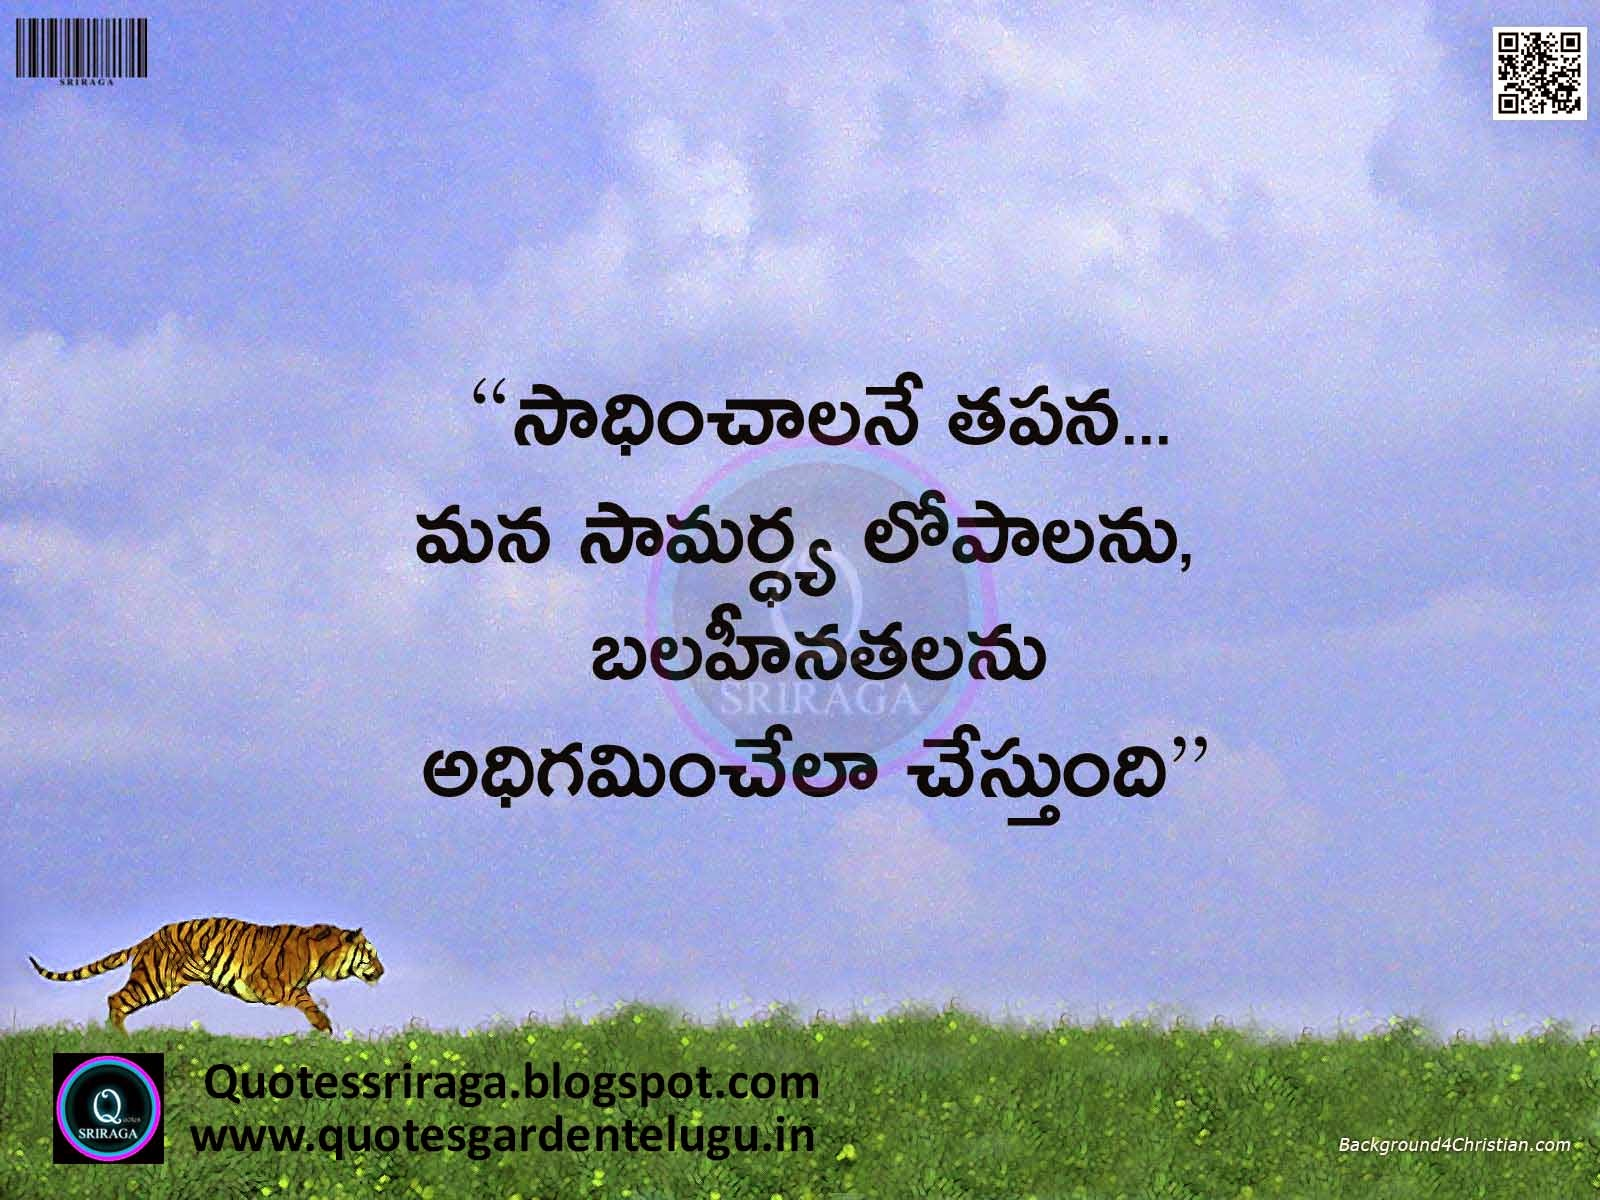 Top Telugu Quotes Victory Quotes 455 with images